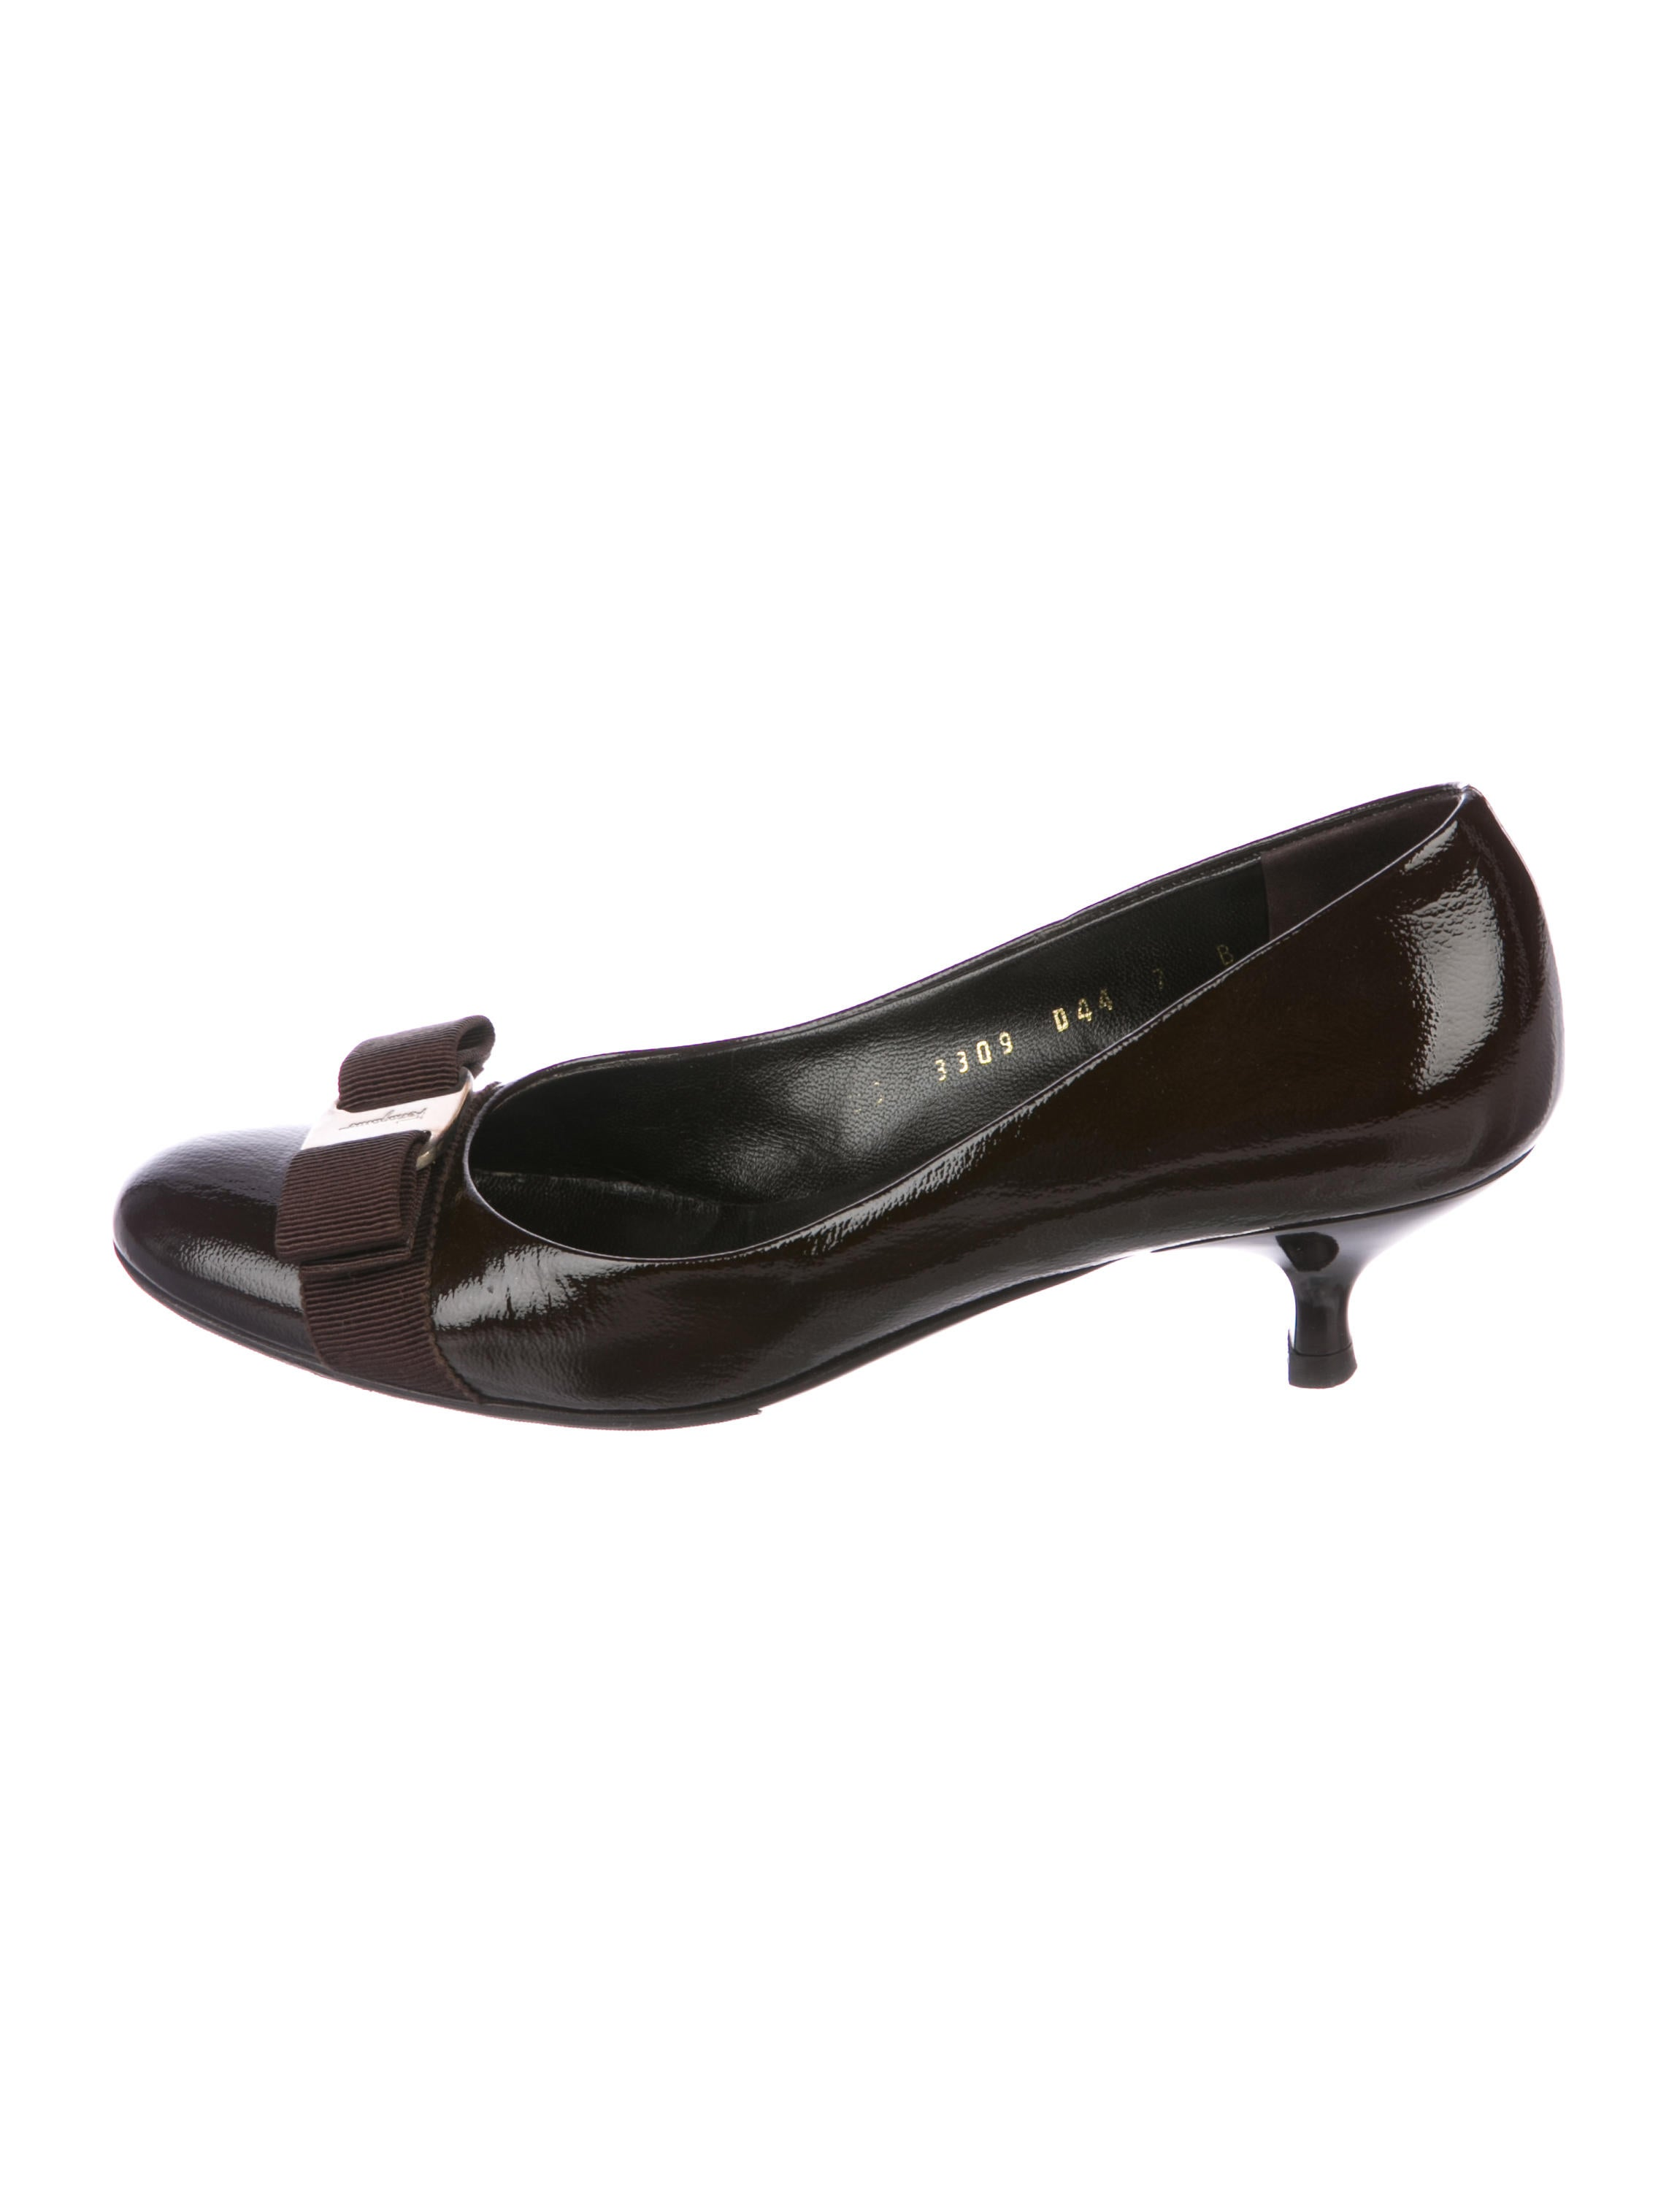 222e53485286 Salvatore Ferragamo Carla Vara Pumps - Shoes - SAL69633